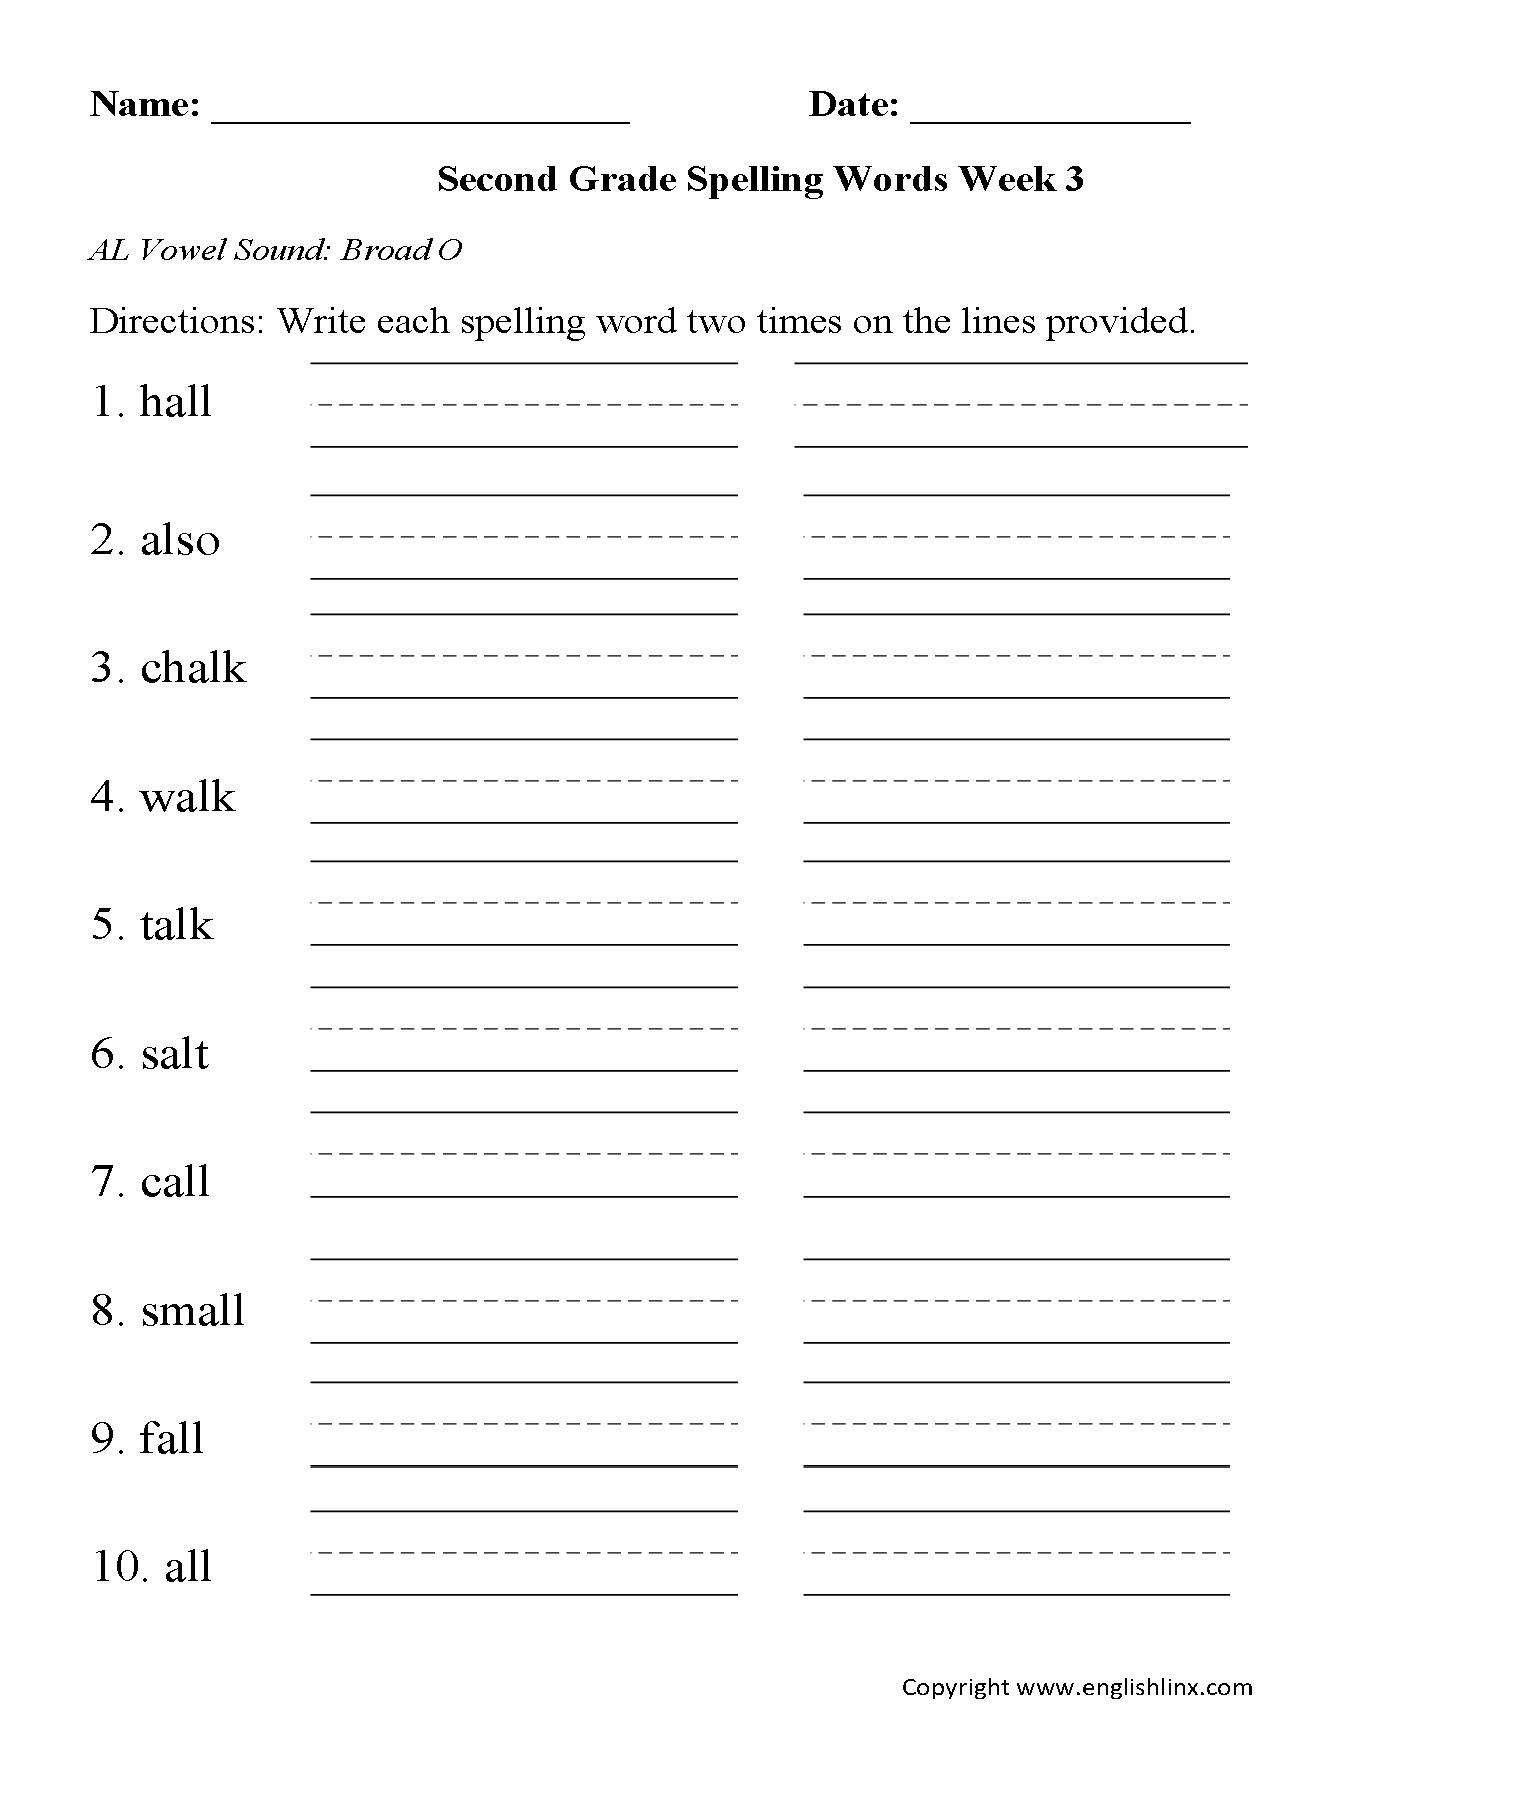 Spellings Worksheets The Best Worksheets Image Collection